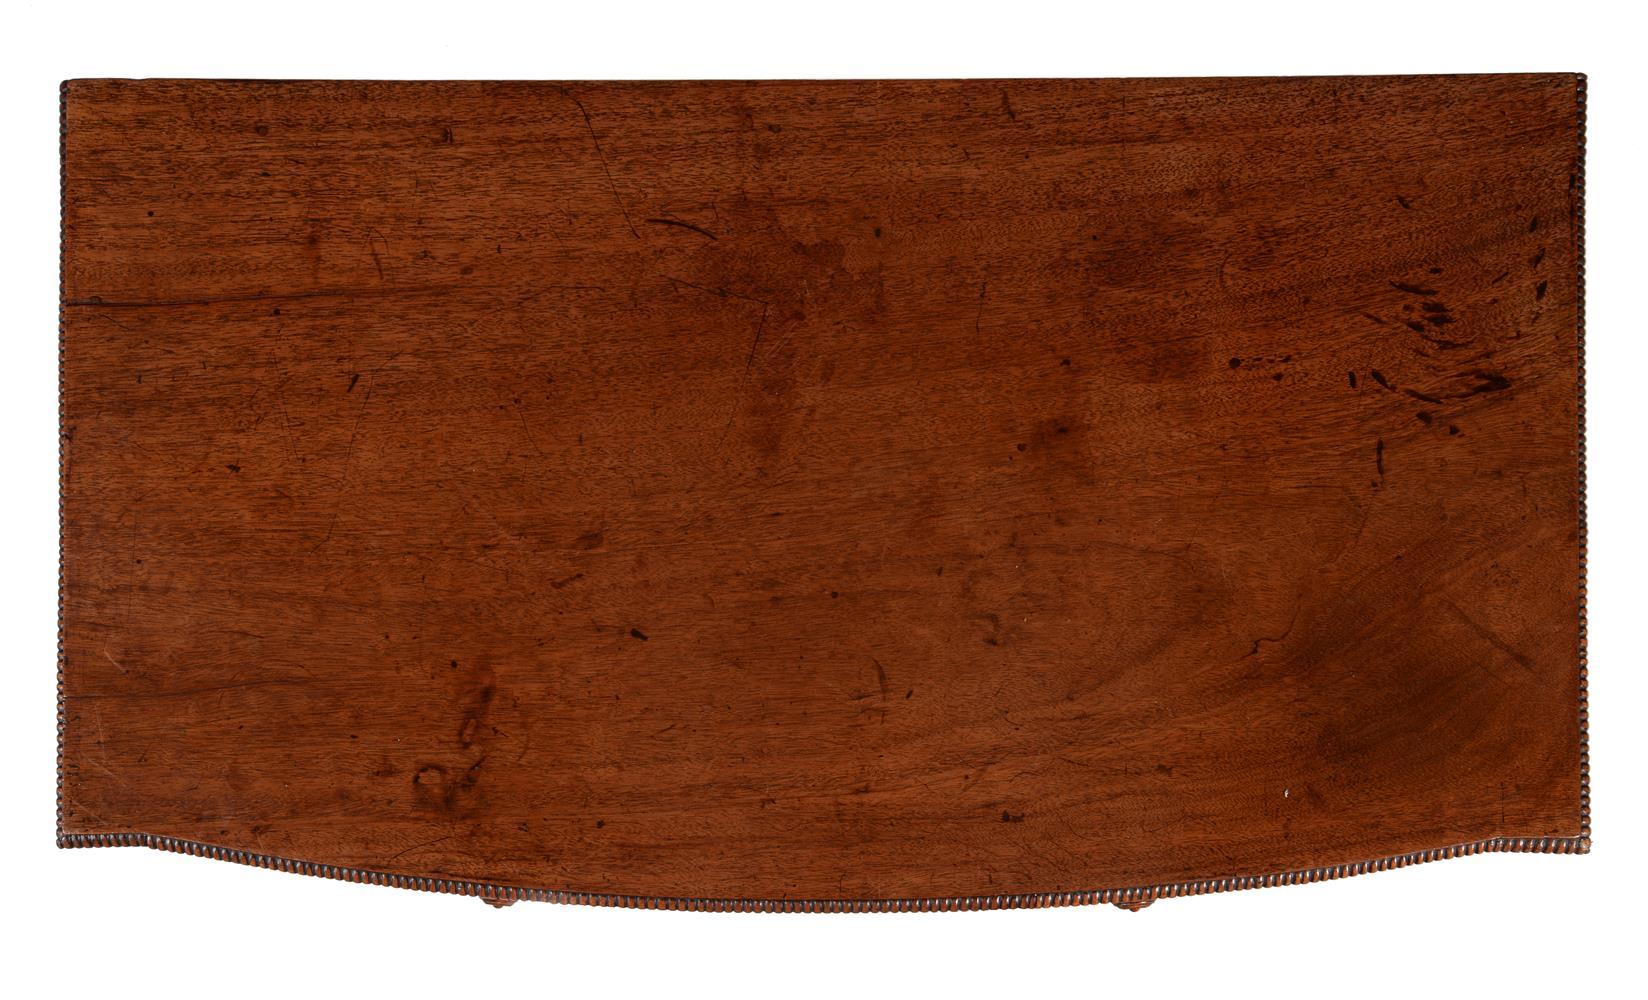 A George IV mahogany bowfront side table - Image 2 of 4